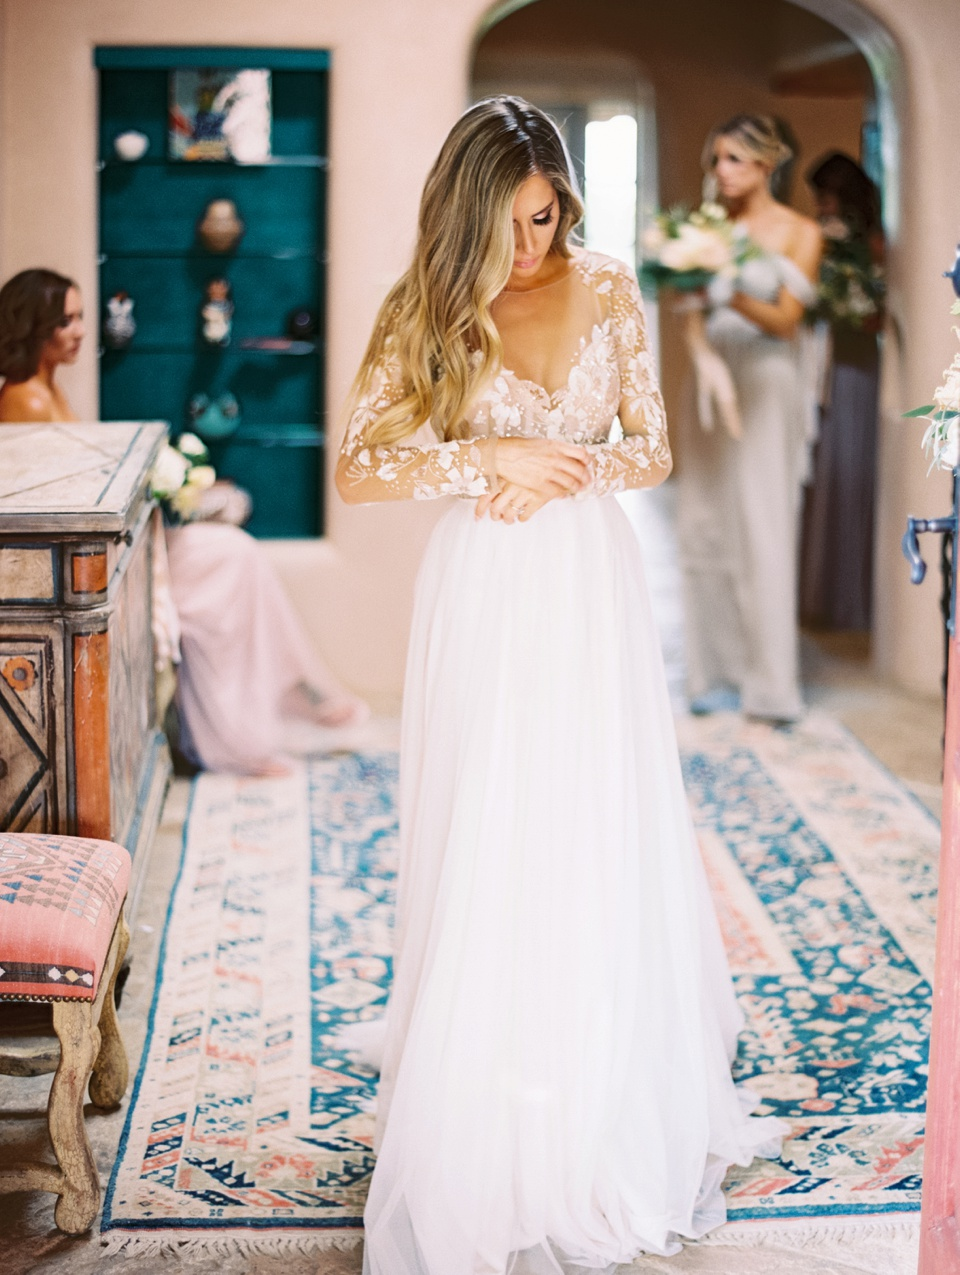 Remington gown by Hayley Paige | Becca Lea Photography